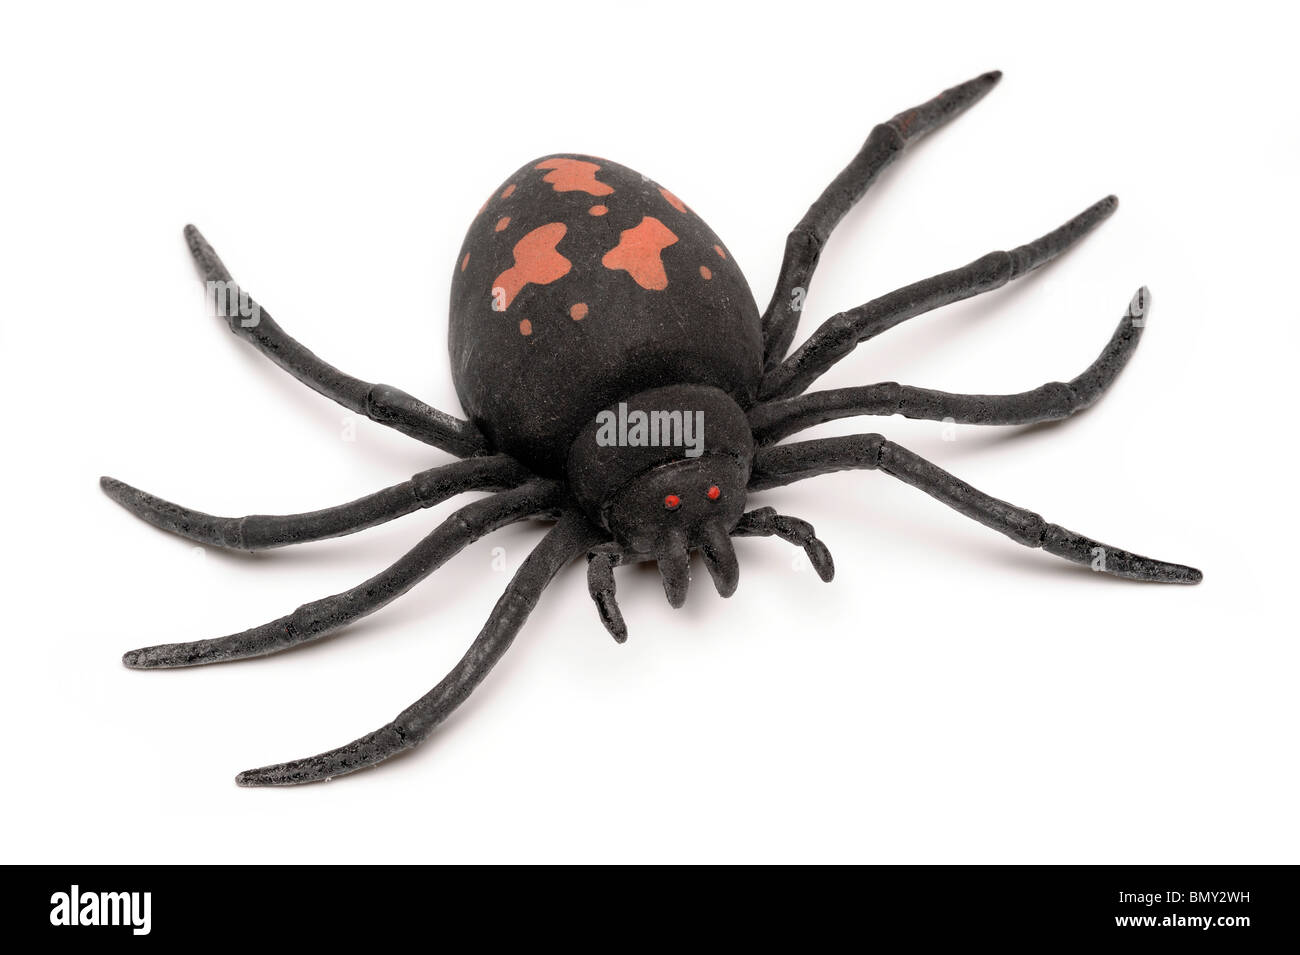 Big black toy rubber spider - Stock Image